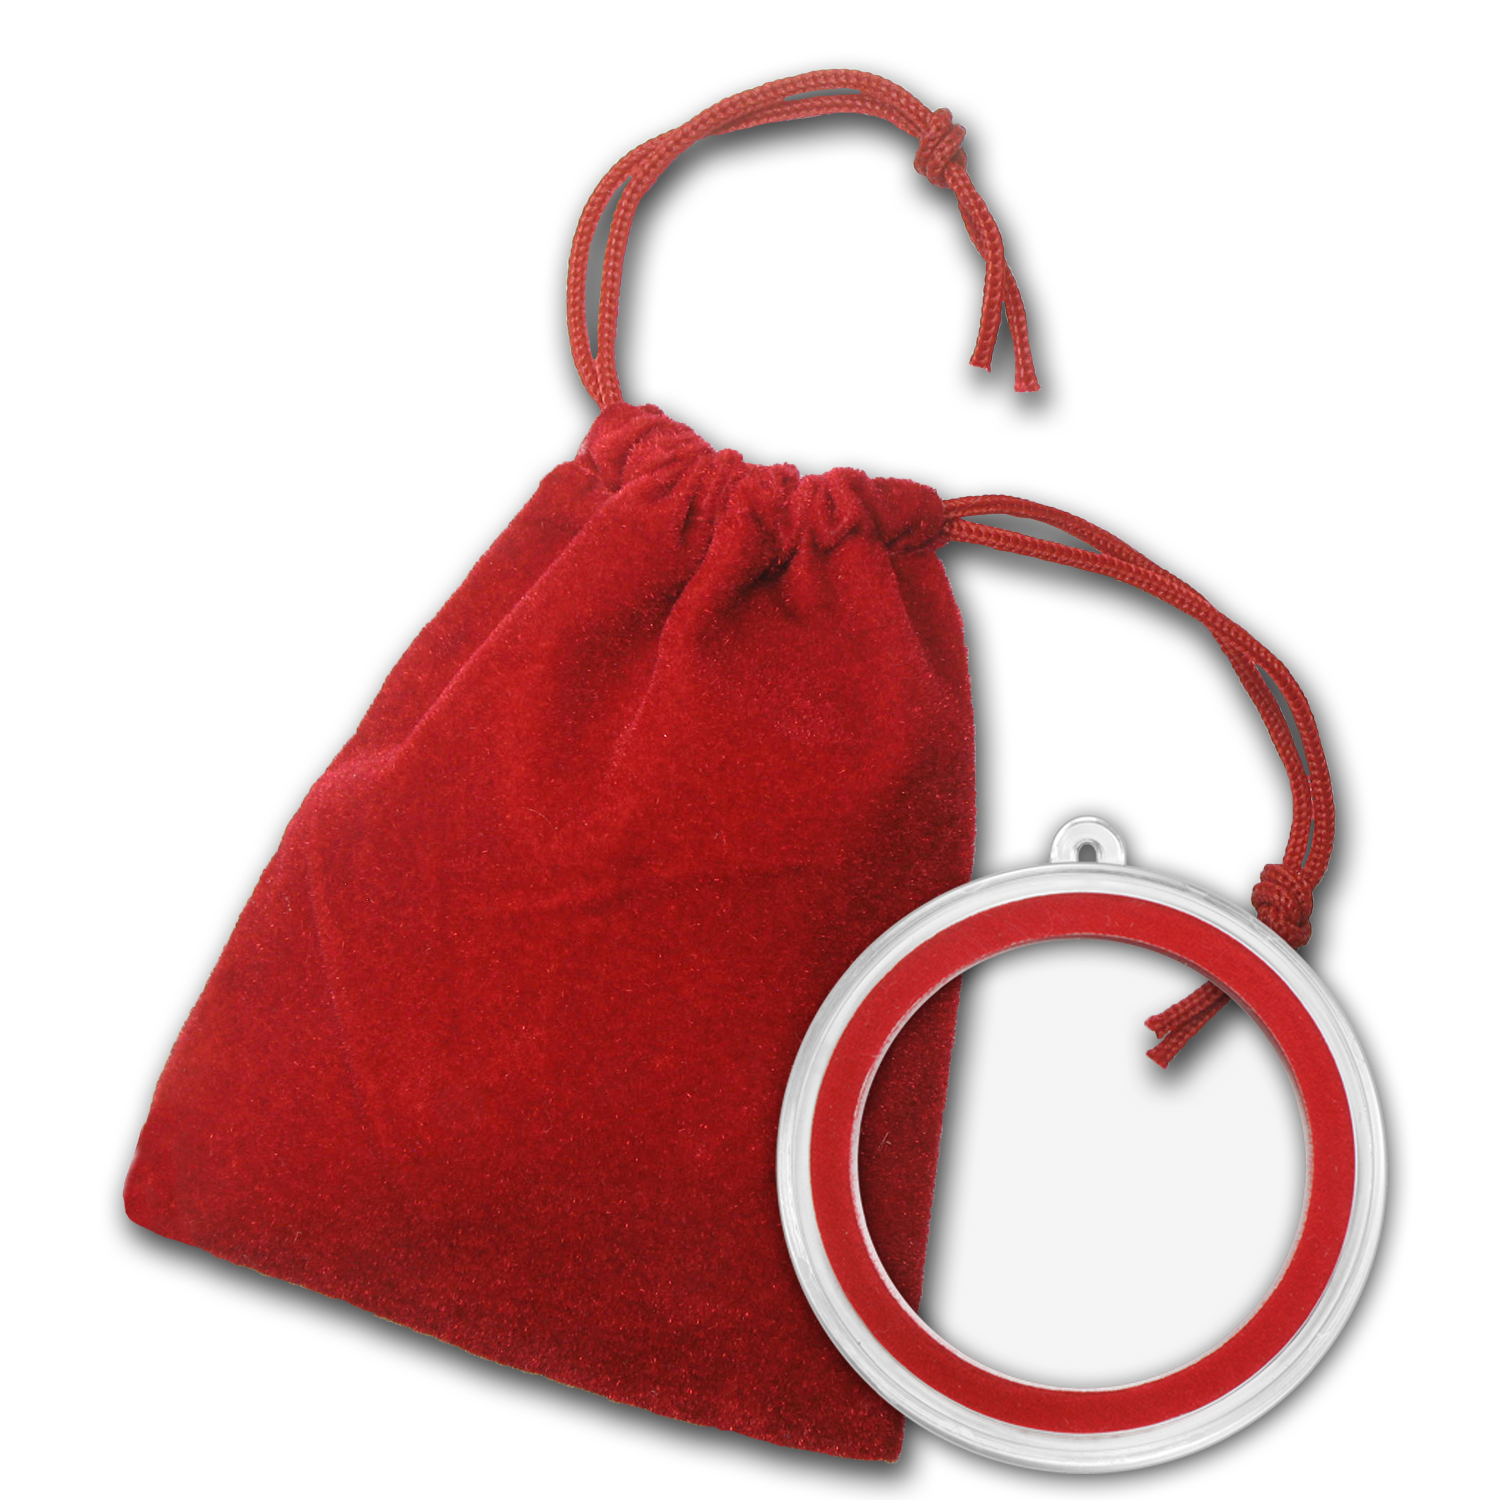 2.75 x 3 inch Red Velour Draw String Pouch w/Ornament Capsule